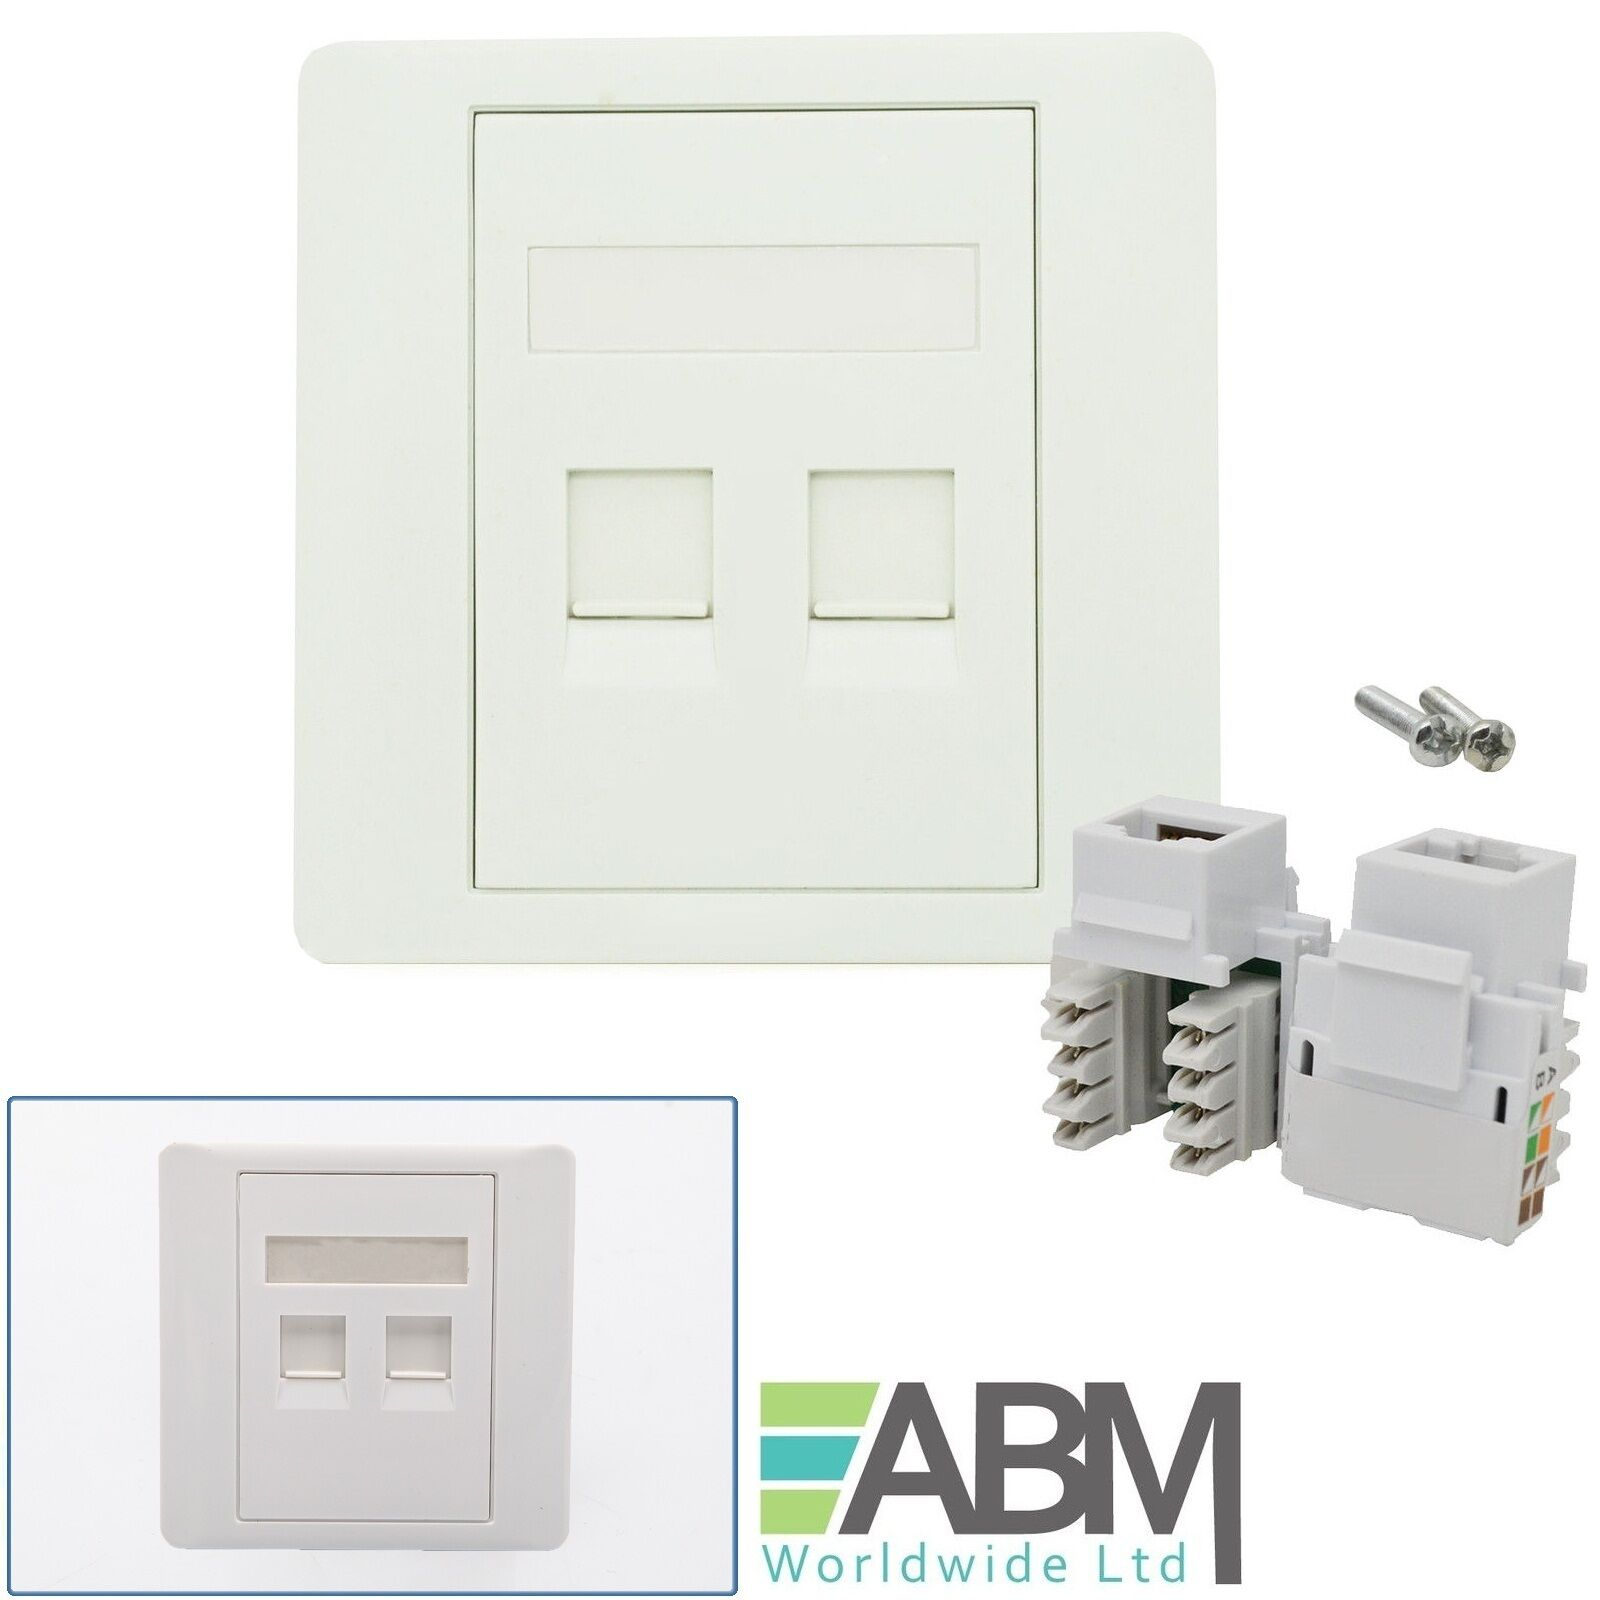 cat5e wiring diagram wall plate image information muhasab info cat5e wiring diagram wall plate